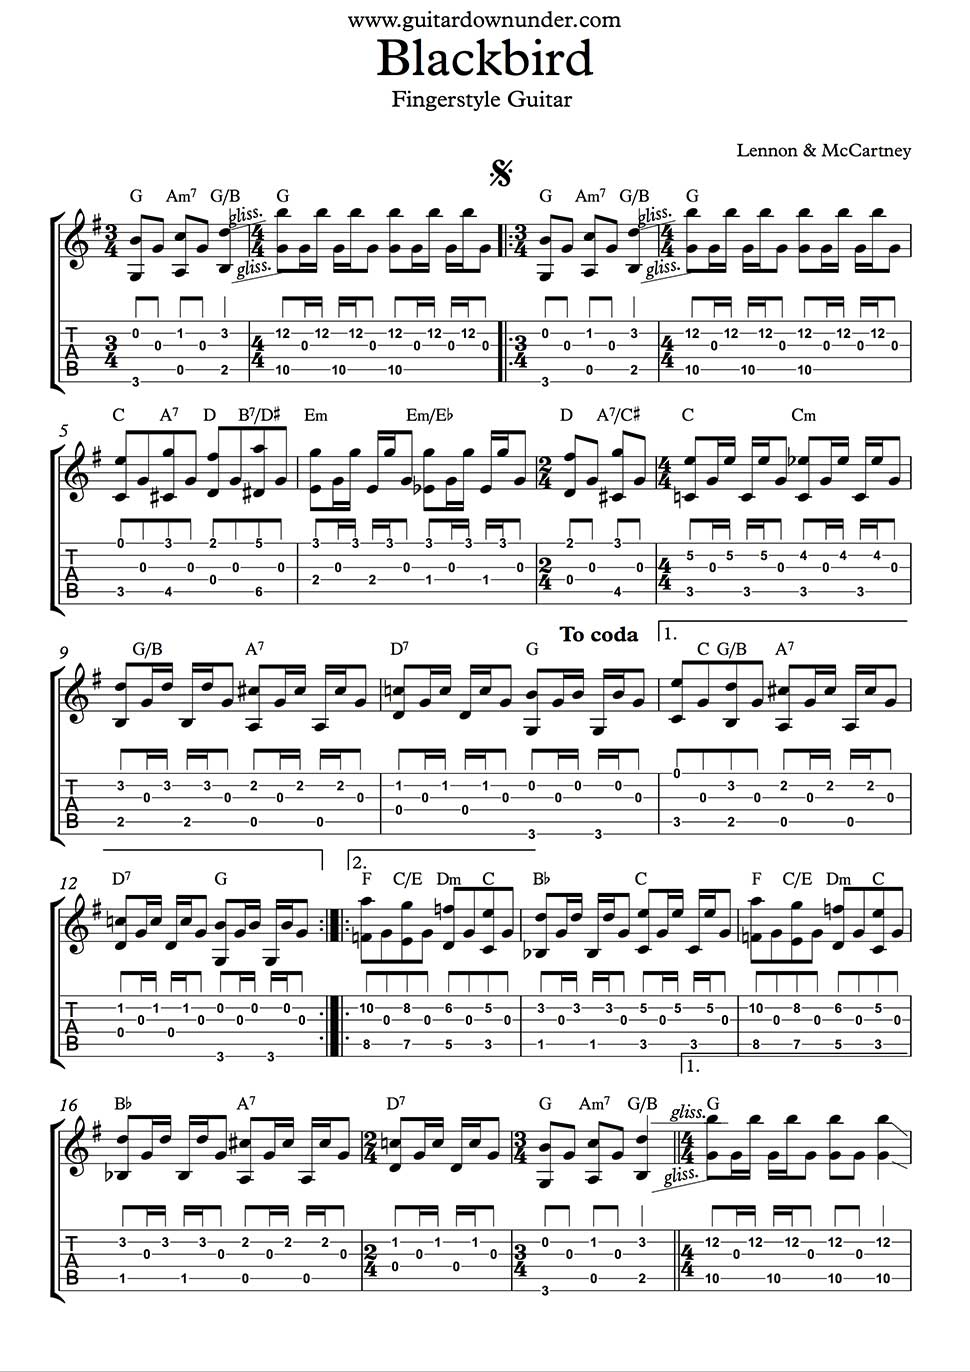 Blackbird Guitar Part As Played By Beatles In Tab And Notation